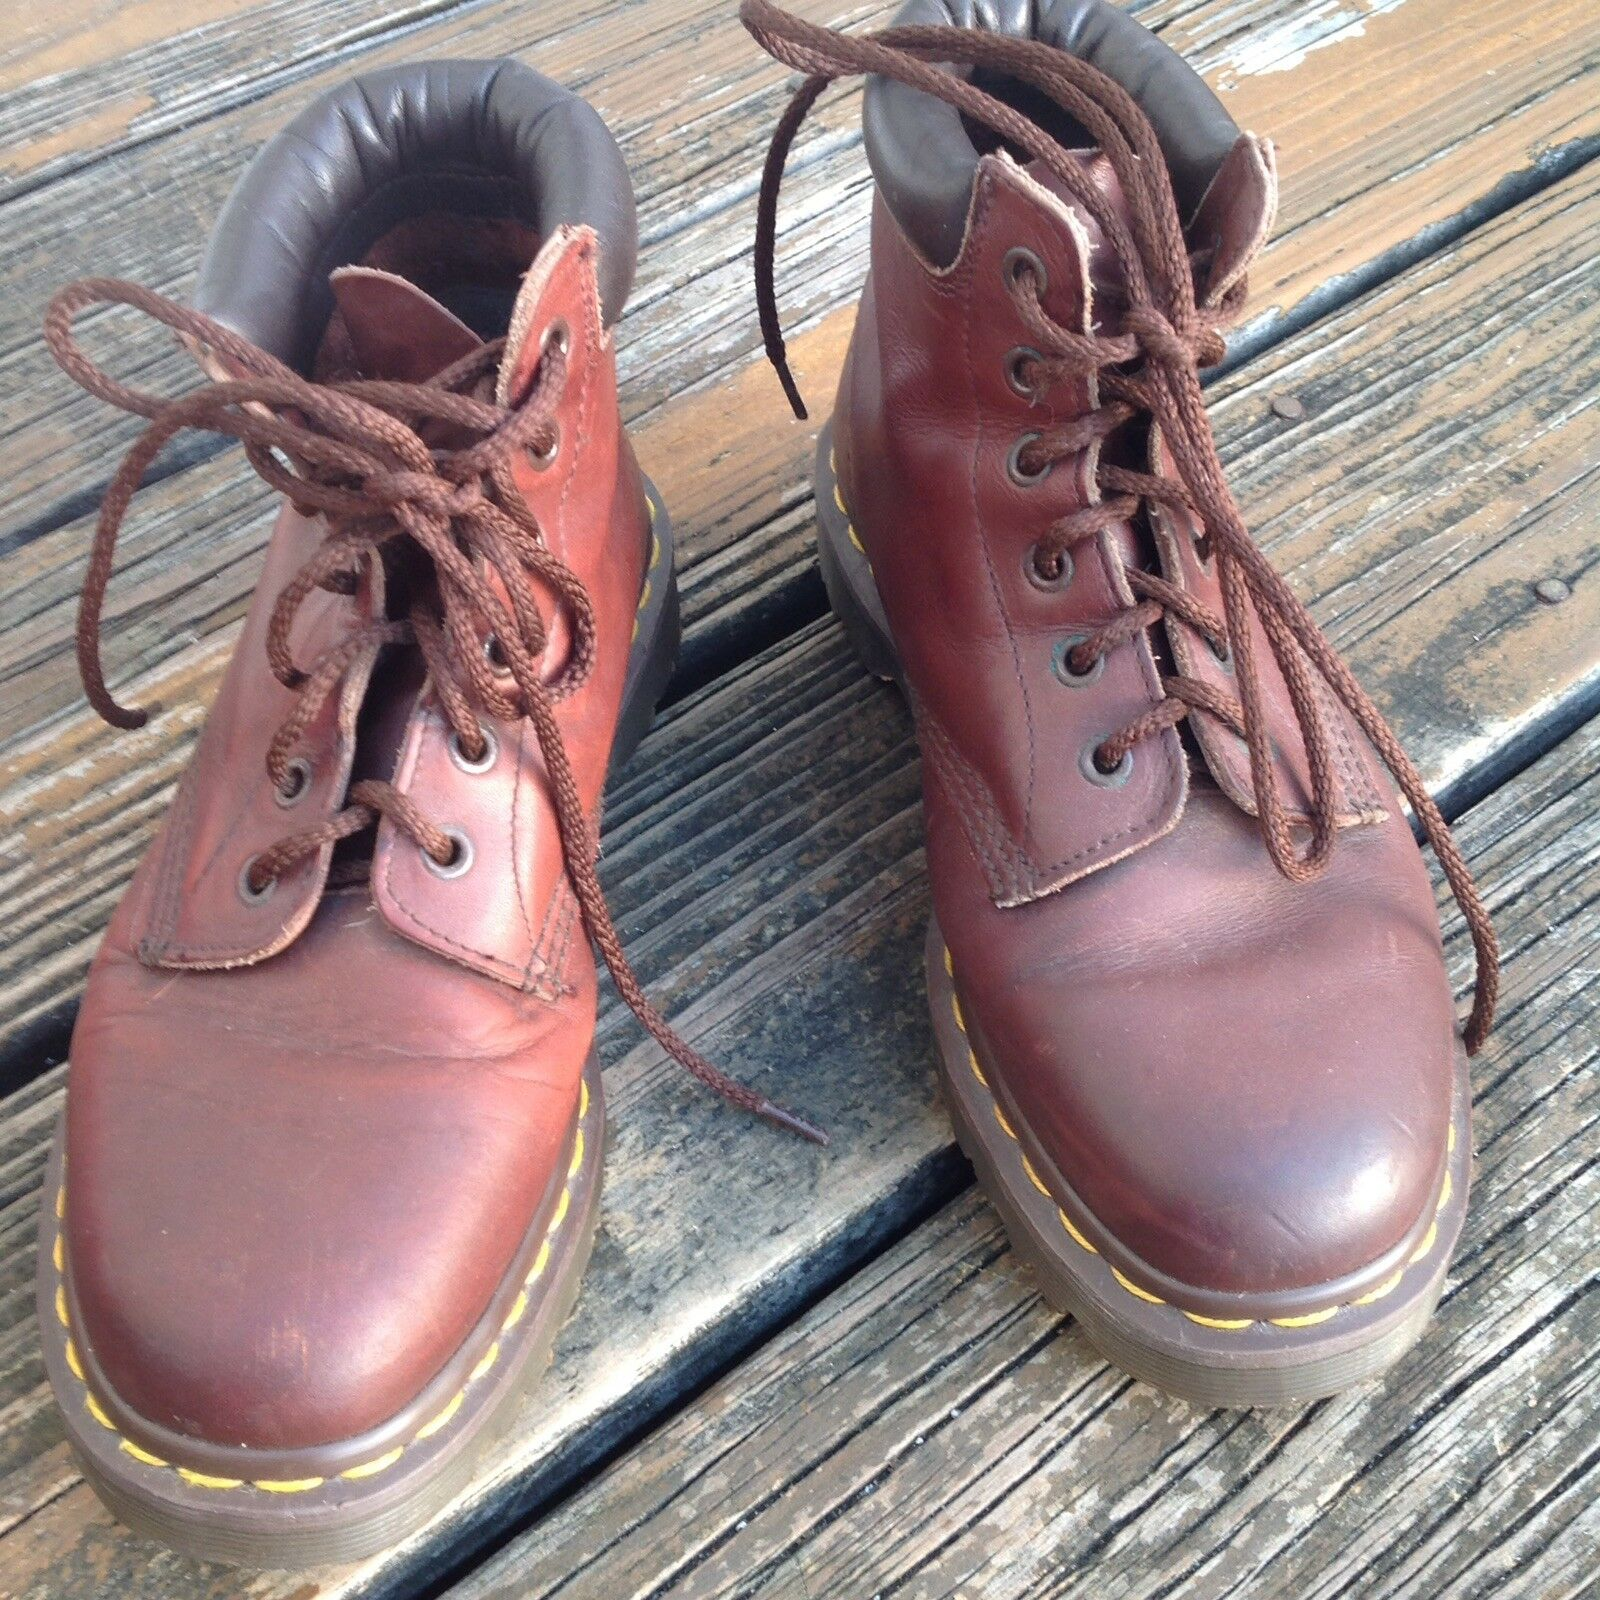 Vintage Dr Martens Docs Brown Leather Boots Mens 7 Womens 8 UK 6 shoes England